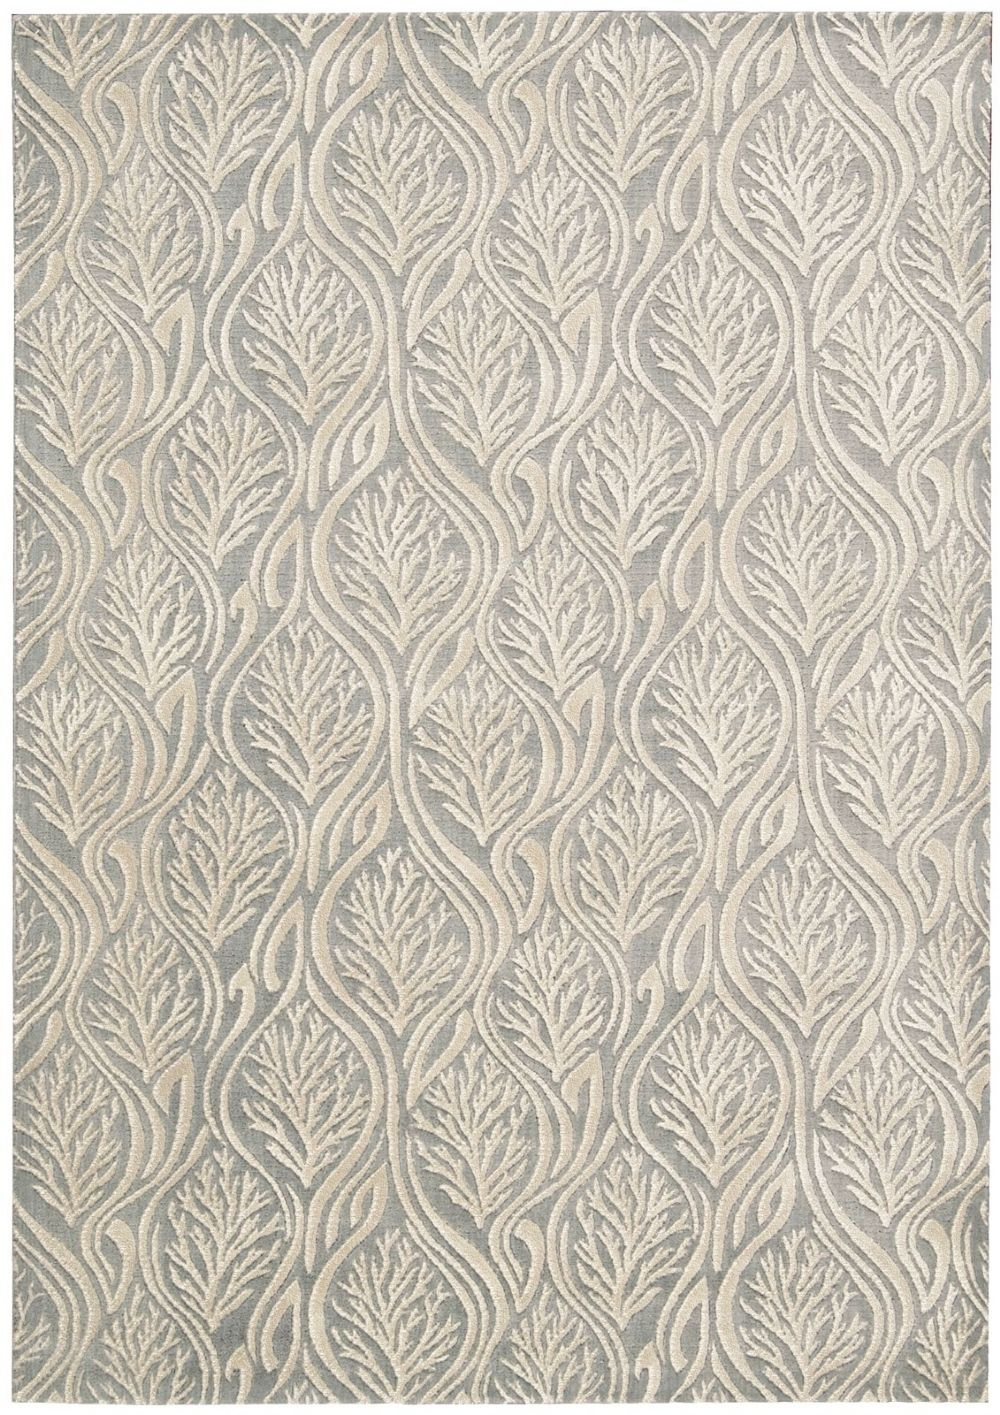 kathy ireland hollywood shimmer paradise cove transitional area rug collection